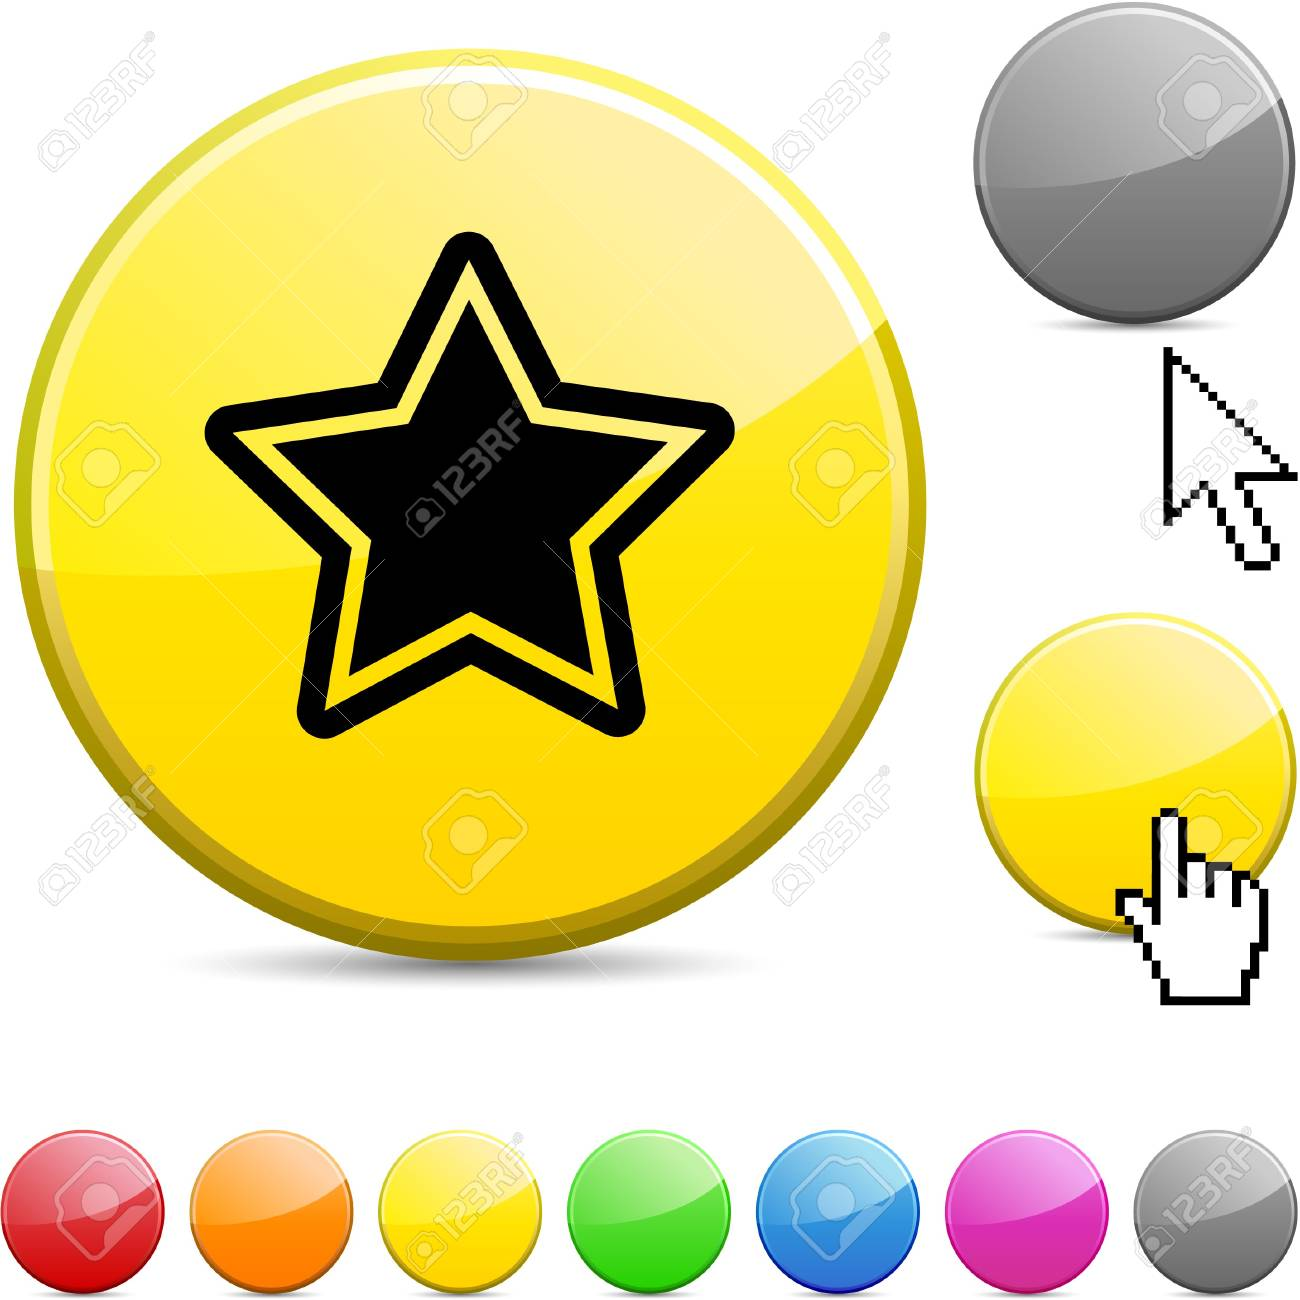 Star glossy vibrant round icon. Stock Vector - 7156269